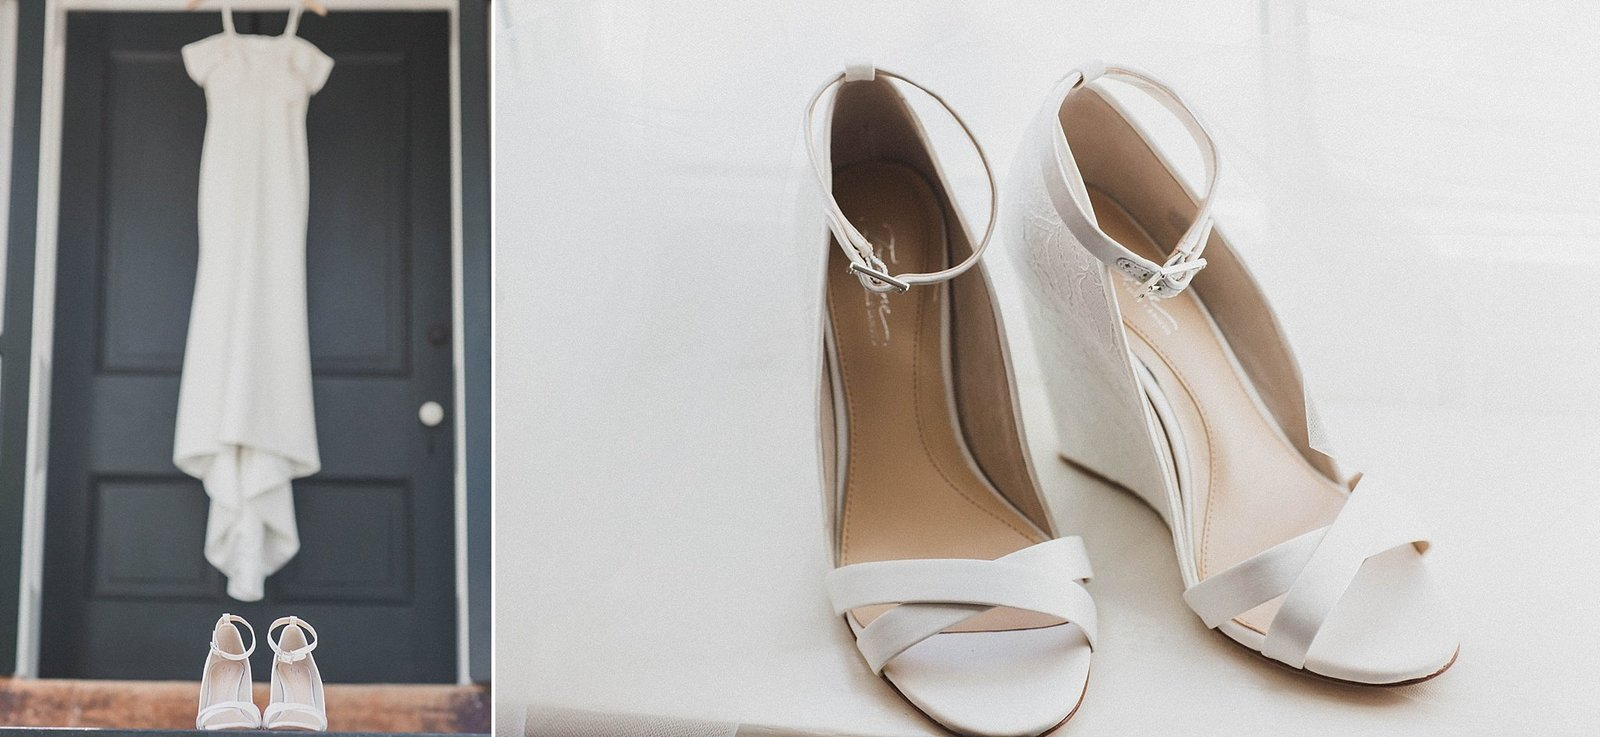 M Harris Studios_Braehead Manor_VA Wedding Photographer_silver shoes